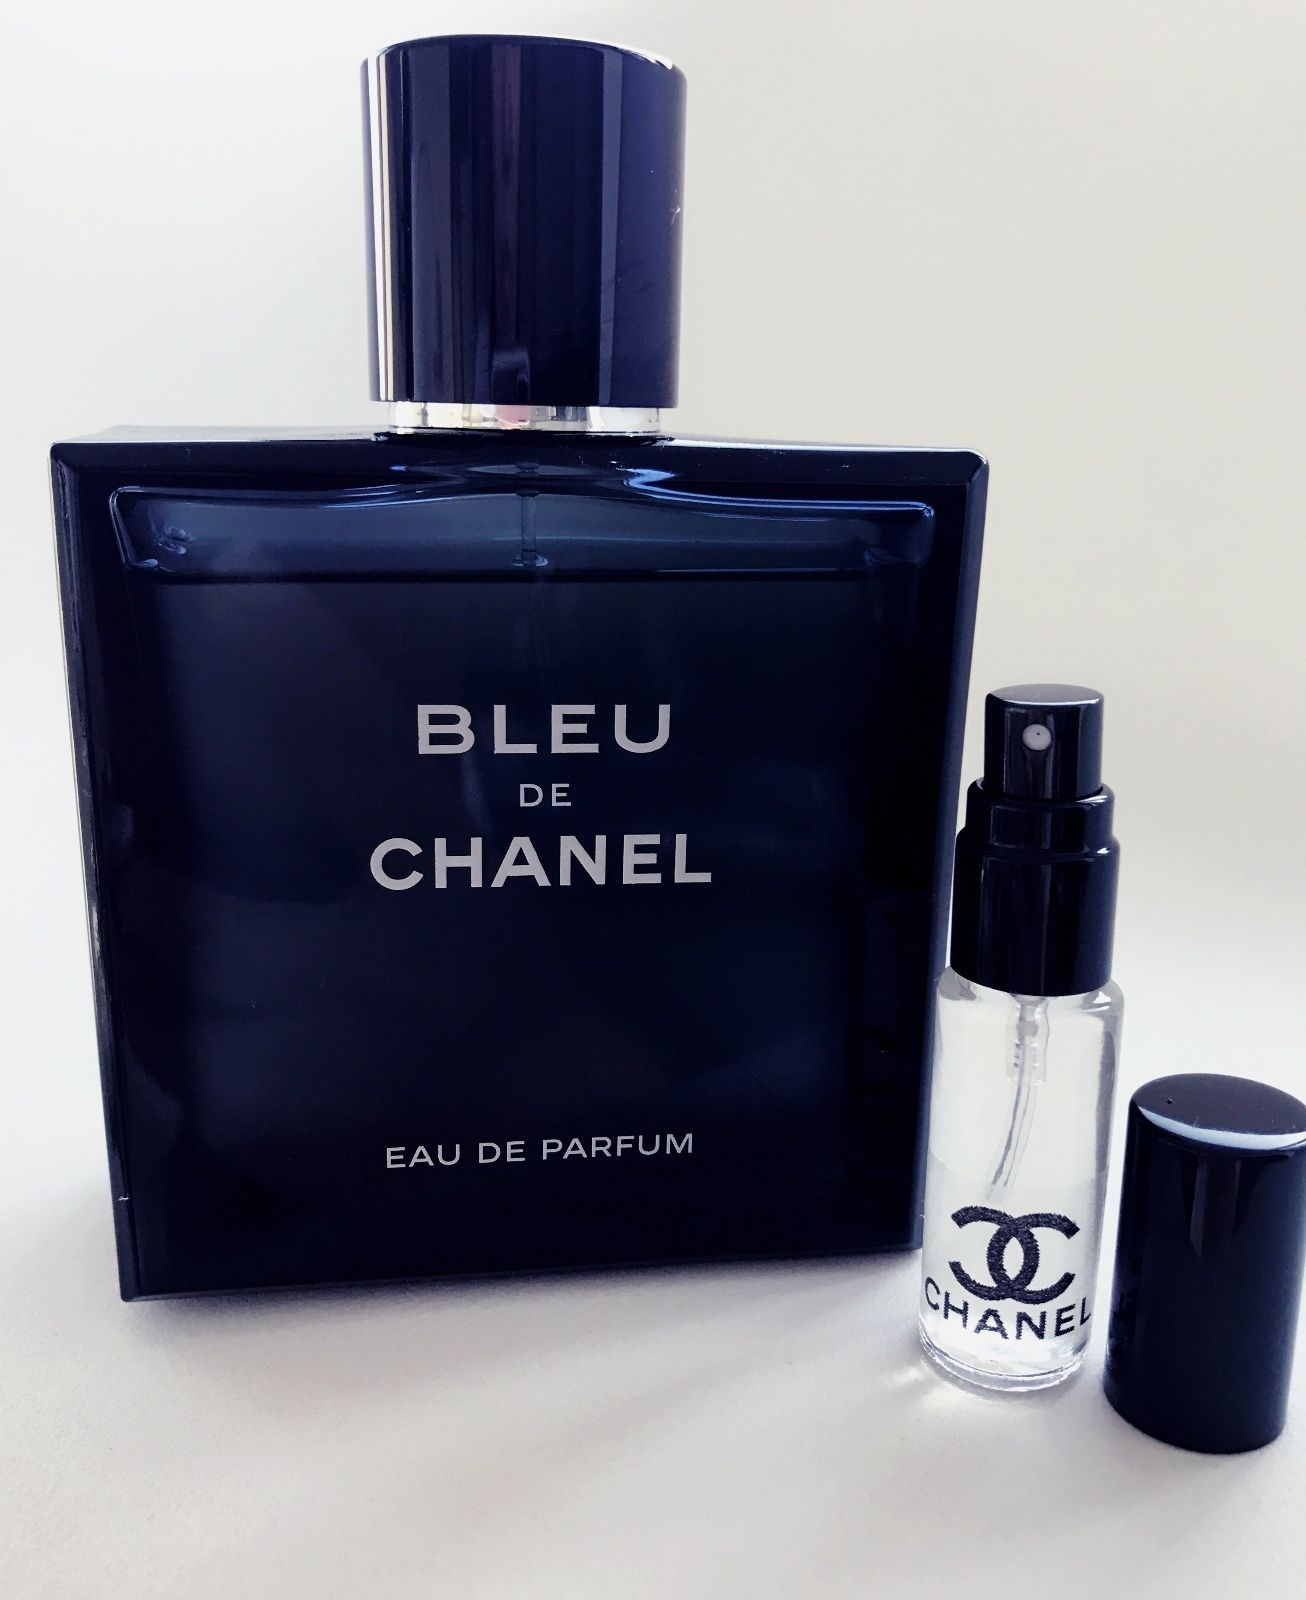 2195 Bleu De Chanel Eau De Parfum Edp Cologne Sample Glass Travel